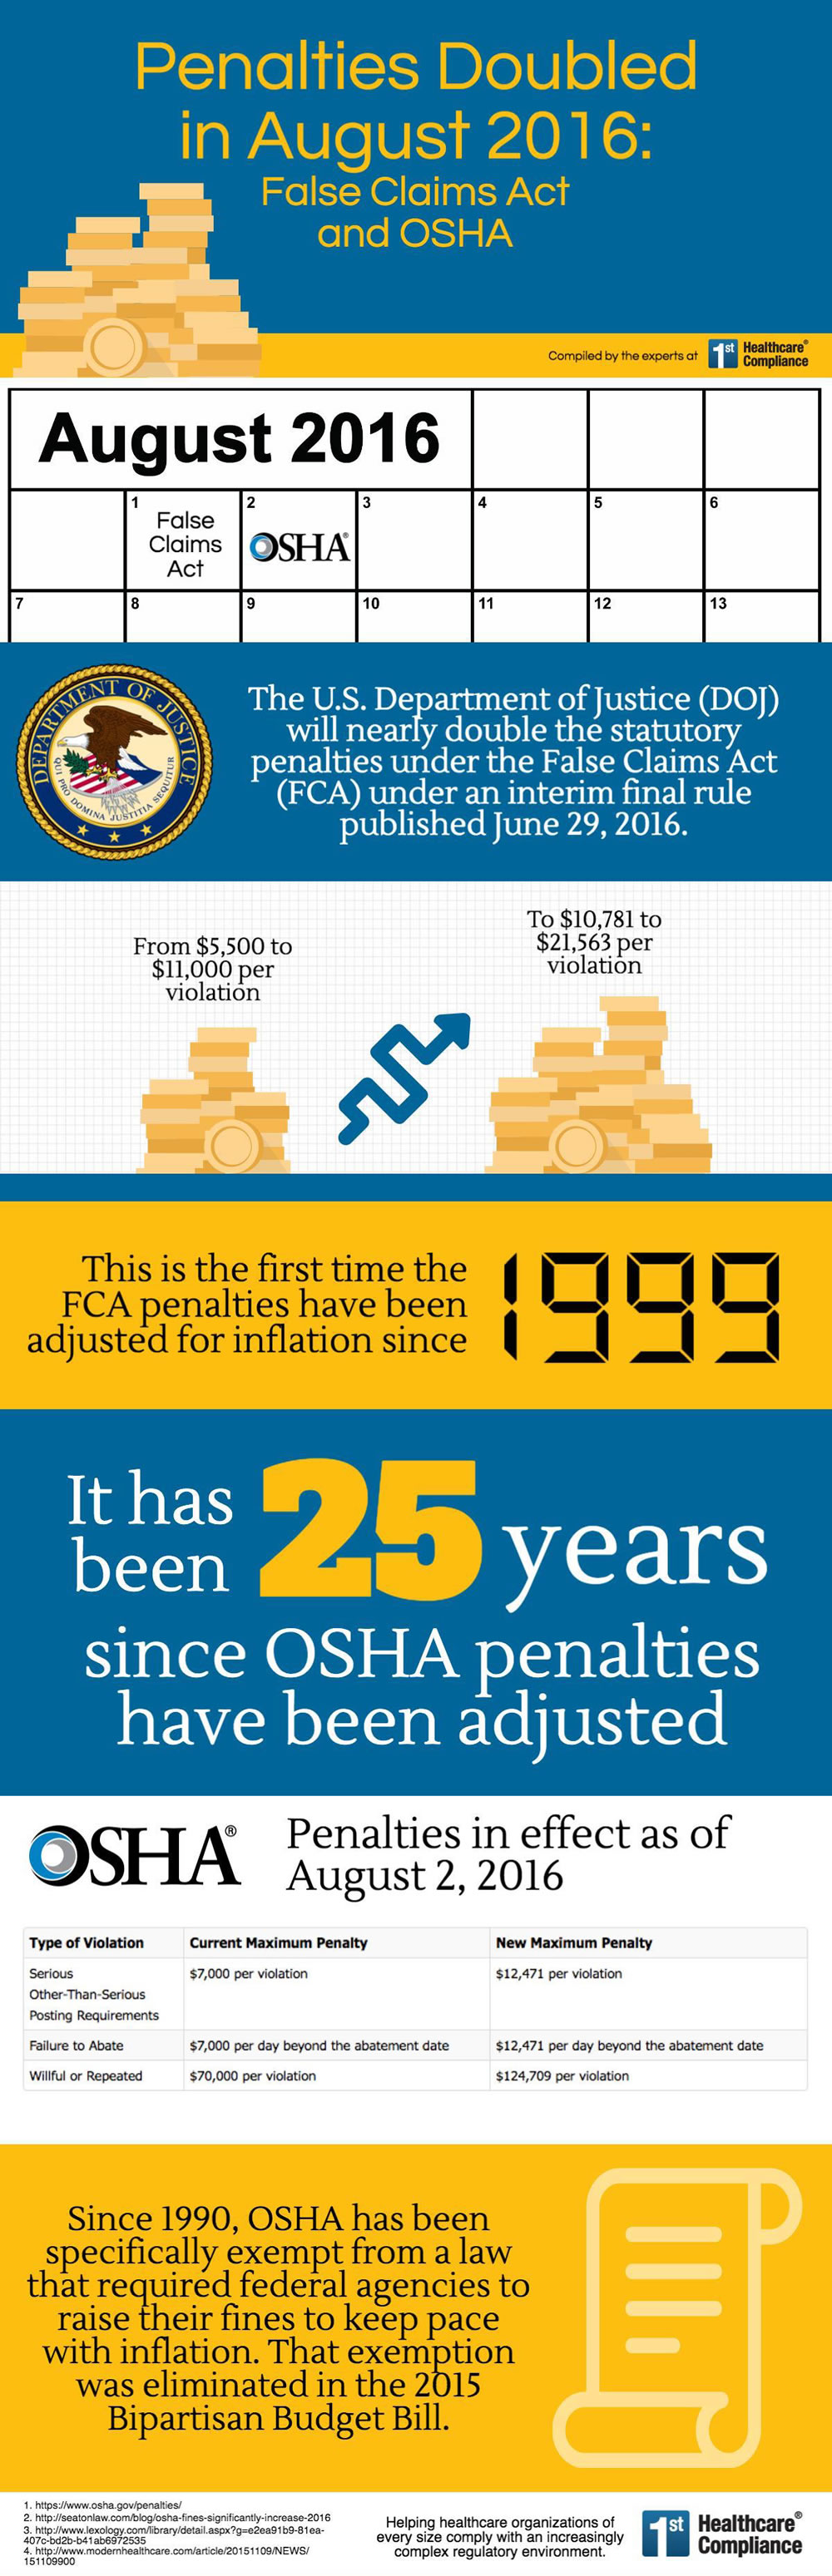 August 2016 brought new penalties for the False Claims Act and OSHA. Review the infographic for more details.